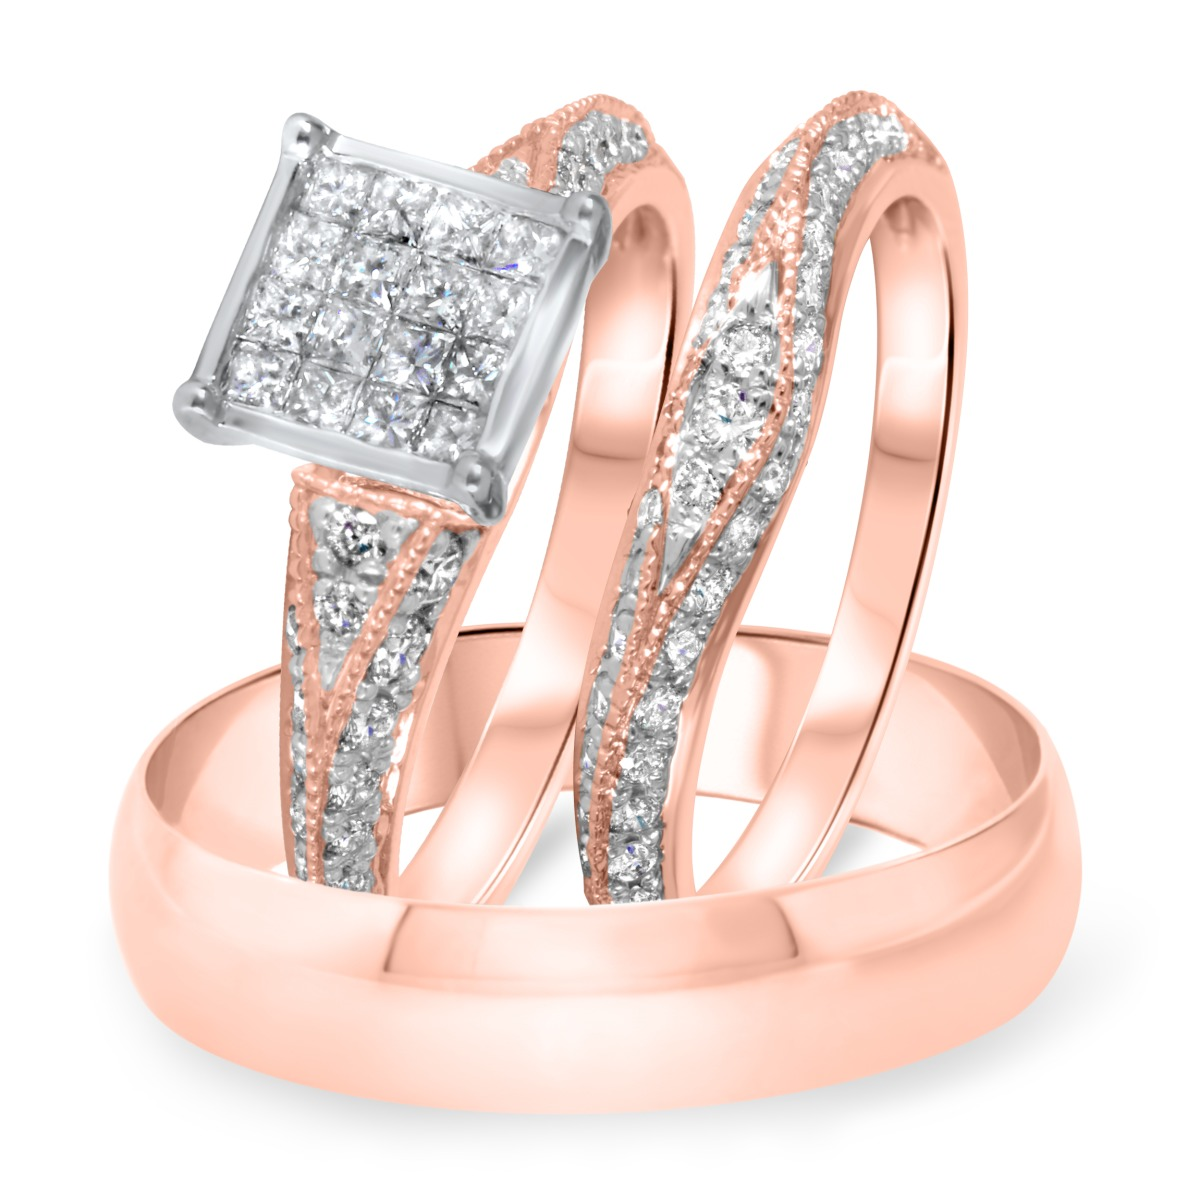 1 1/4 CT. T.W. Diamond Ladies Engagement Ring, Wedding Band, Men's Wedding Band Matching Set 14K Rose Gold